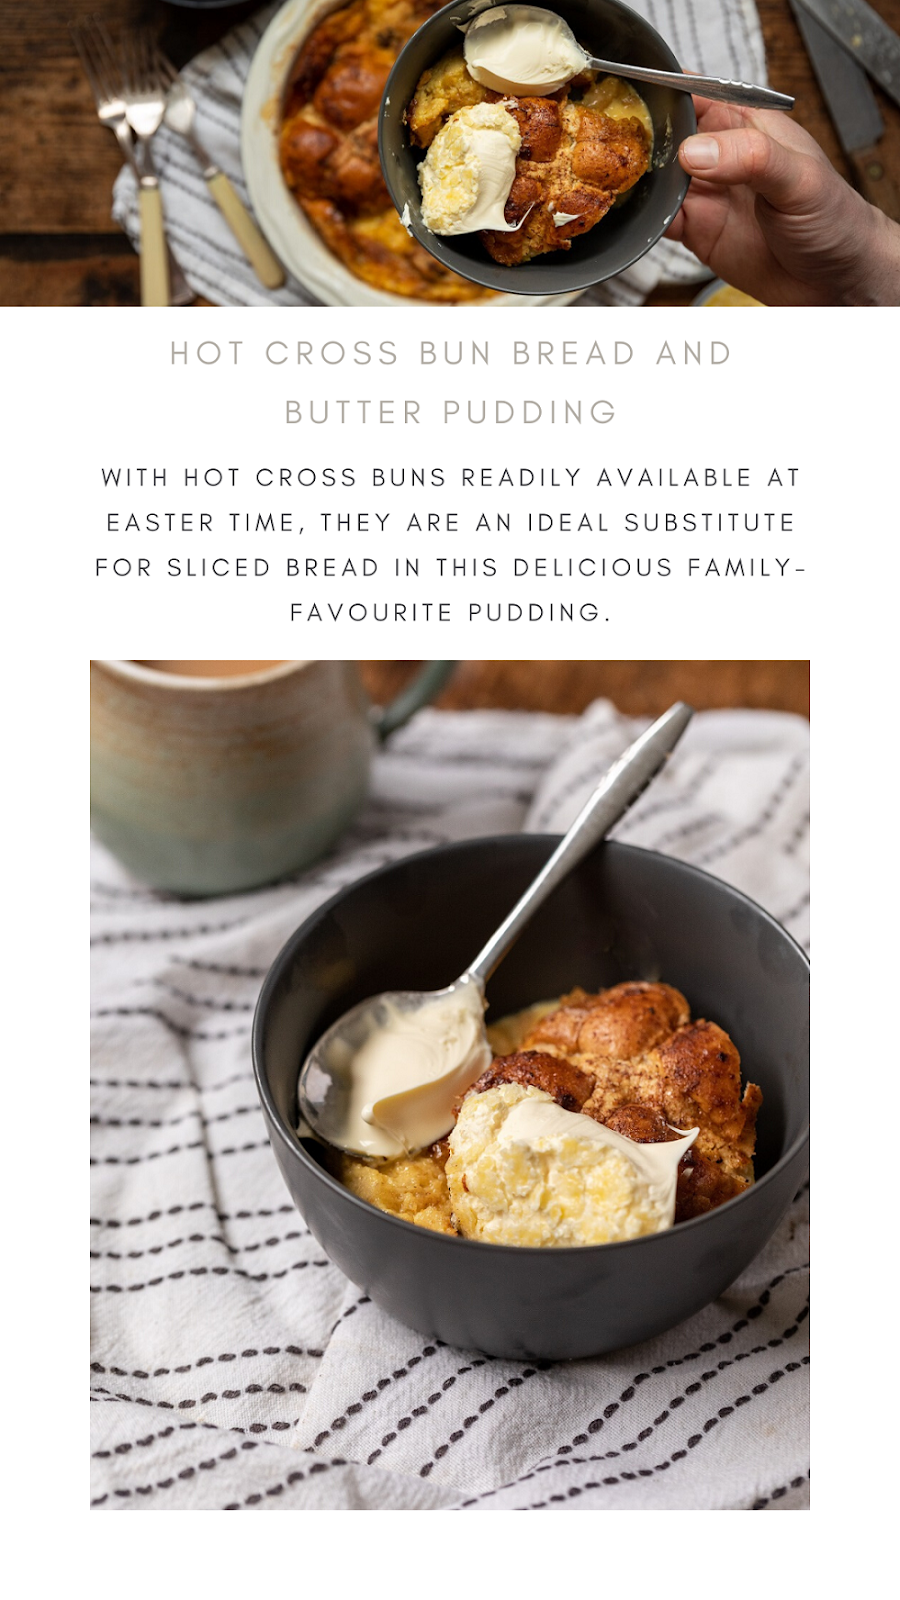 How To Make A Hot Cross Bun Bread And Butter Pudding